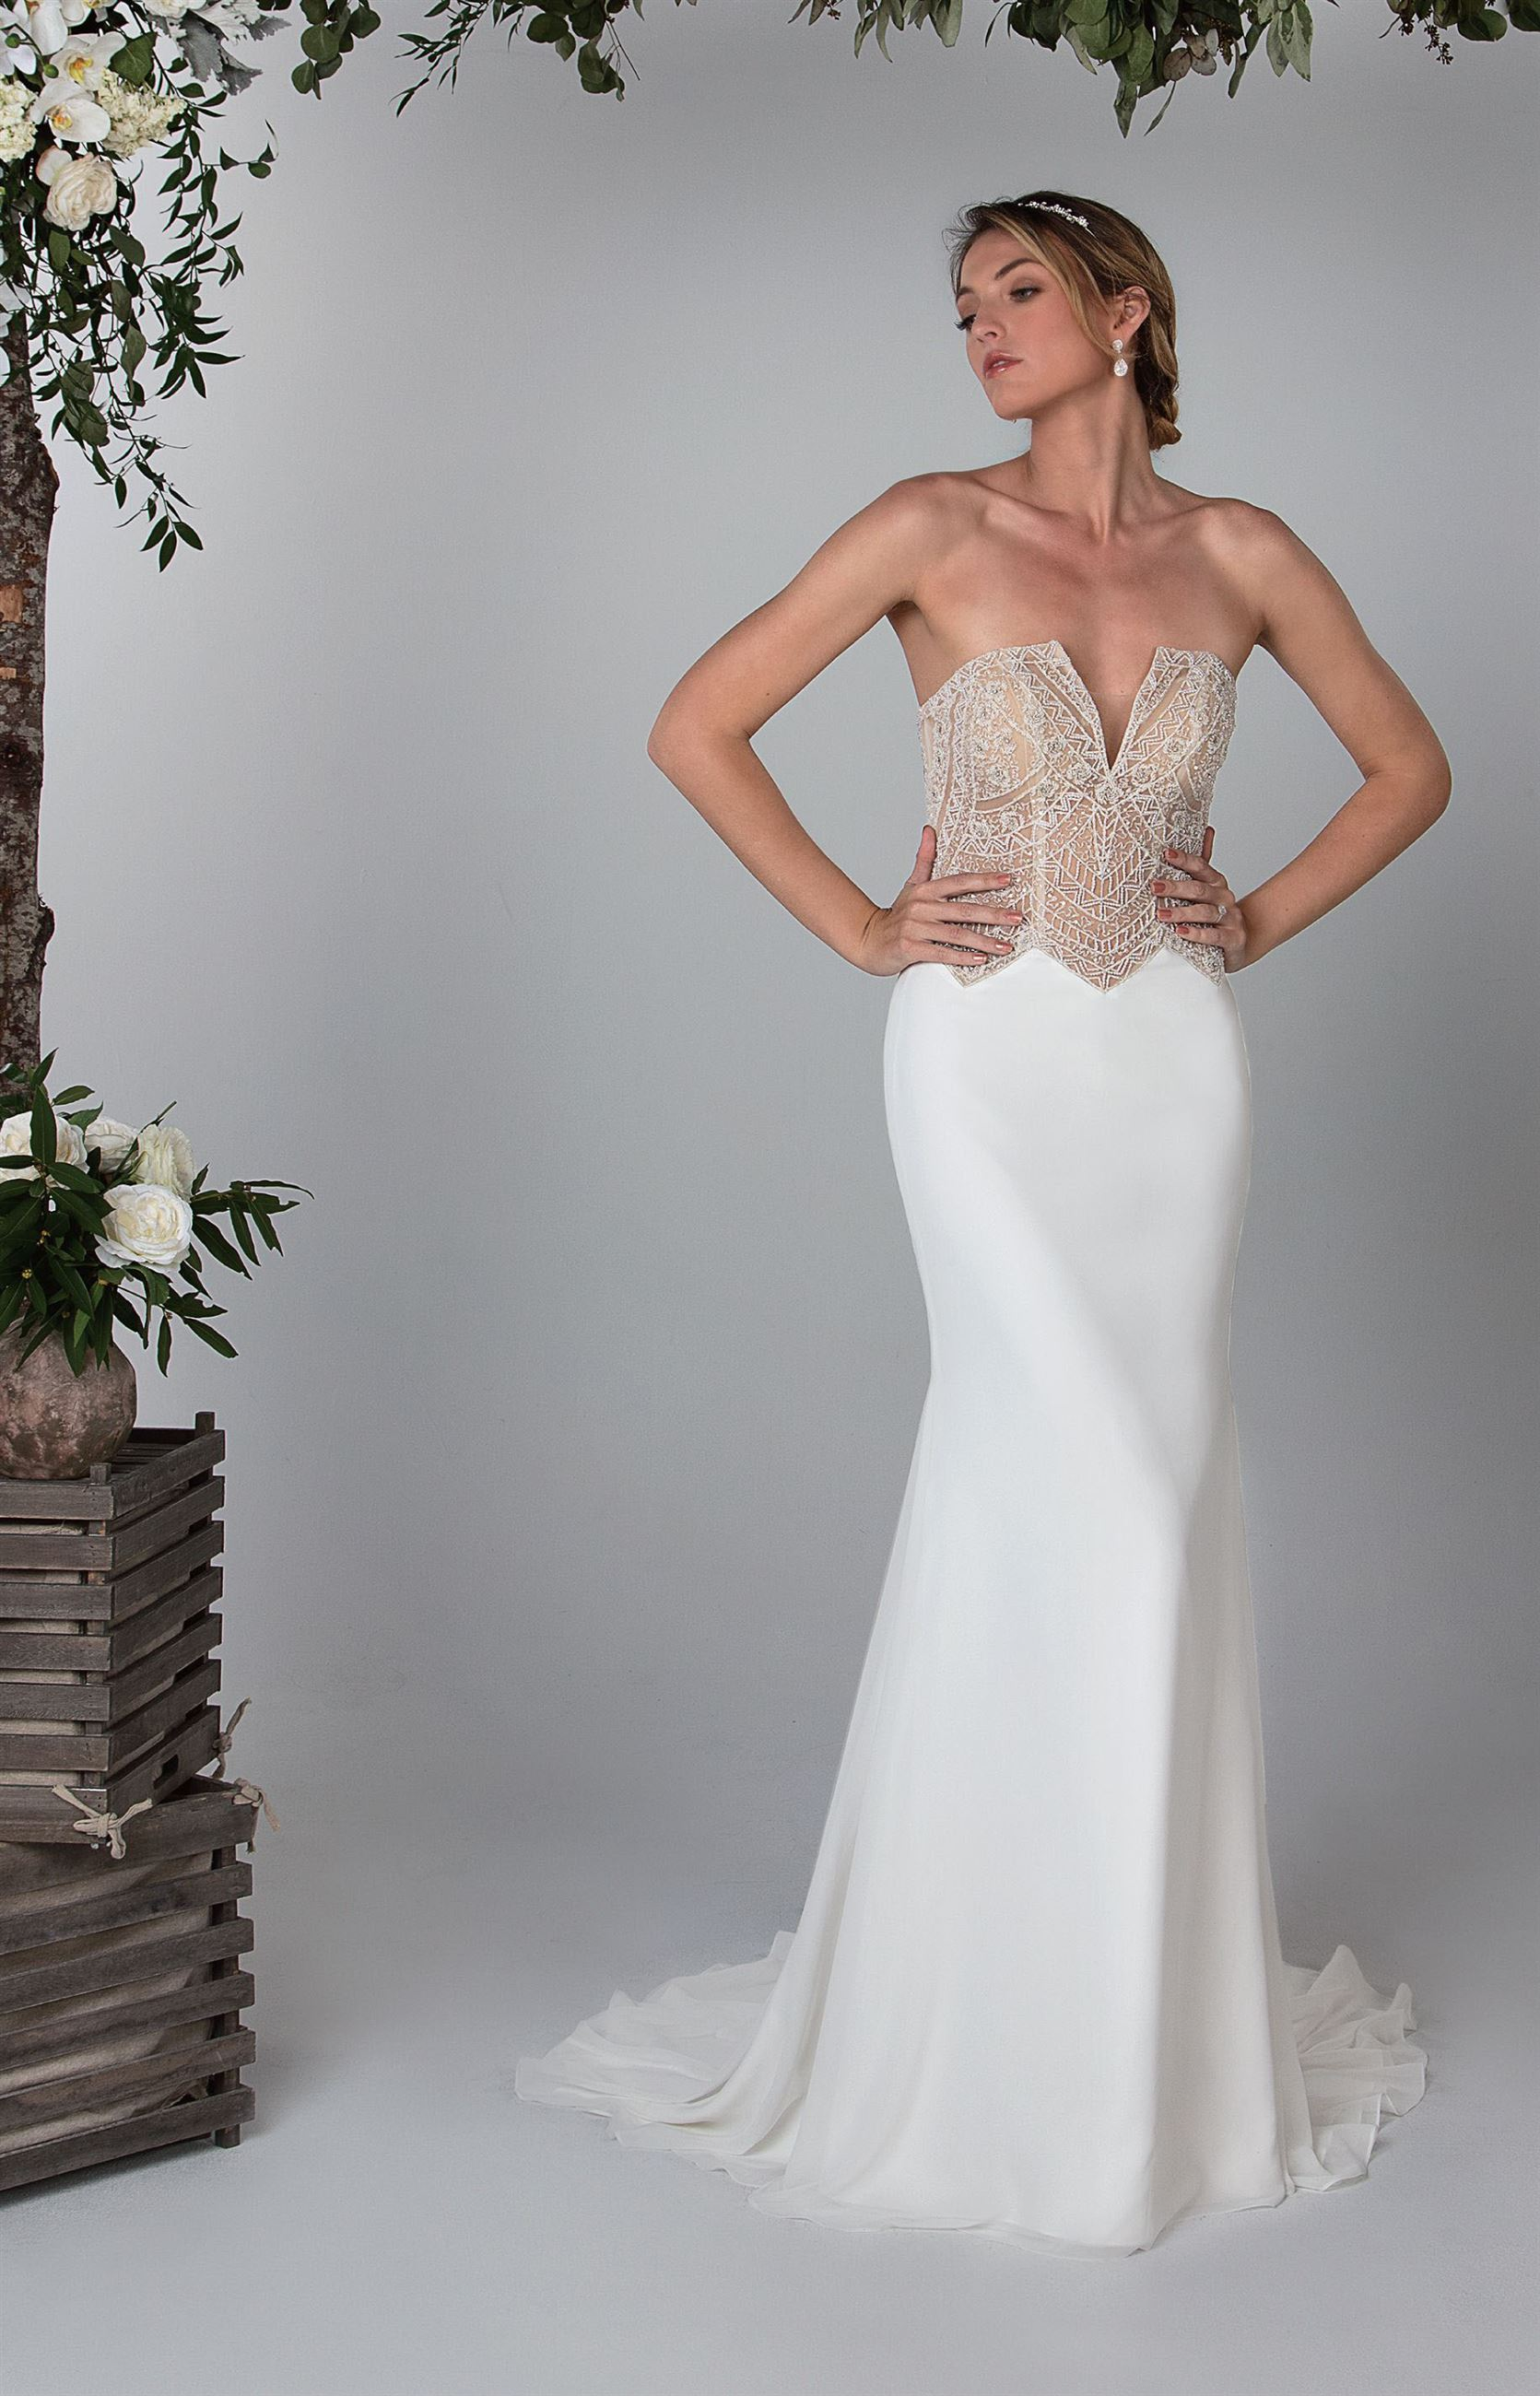 Morgan - Size 12 - Ivory/Nude - $1599 - Sample Price $899